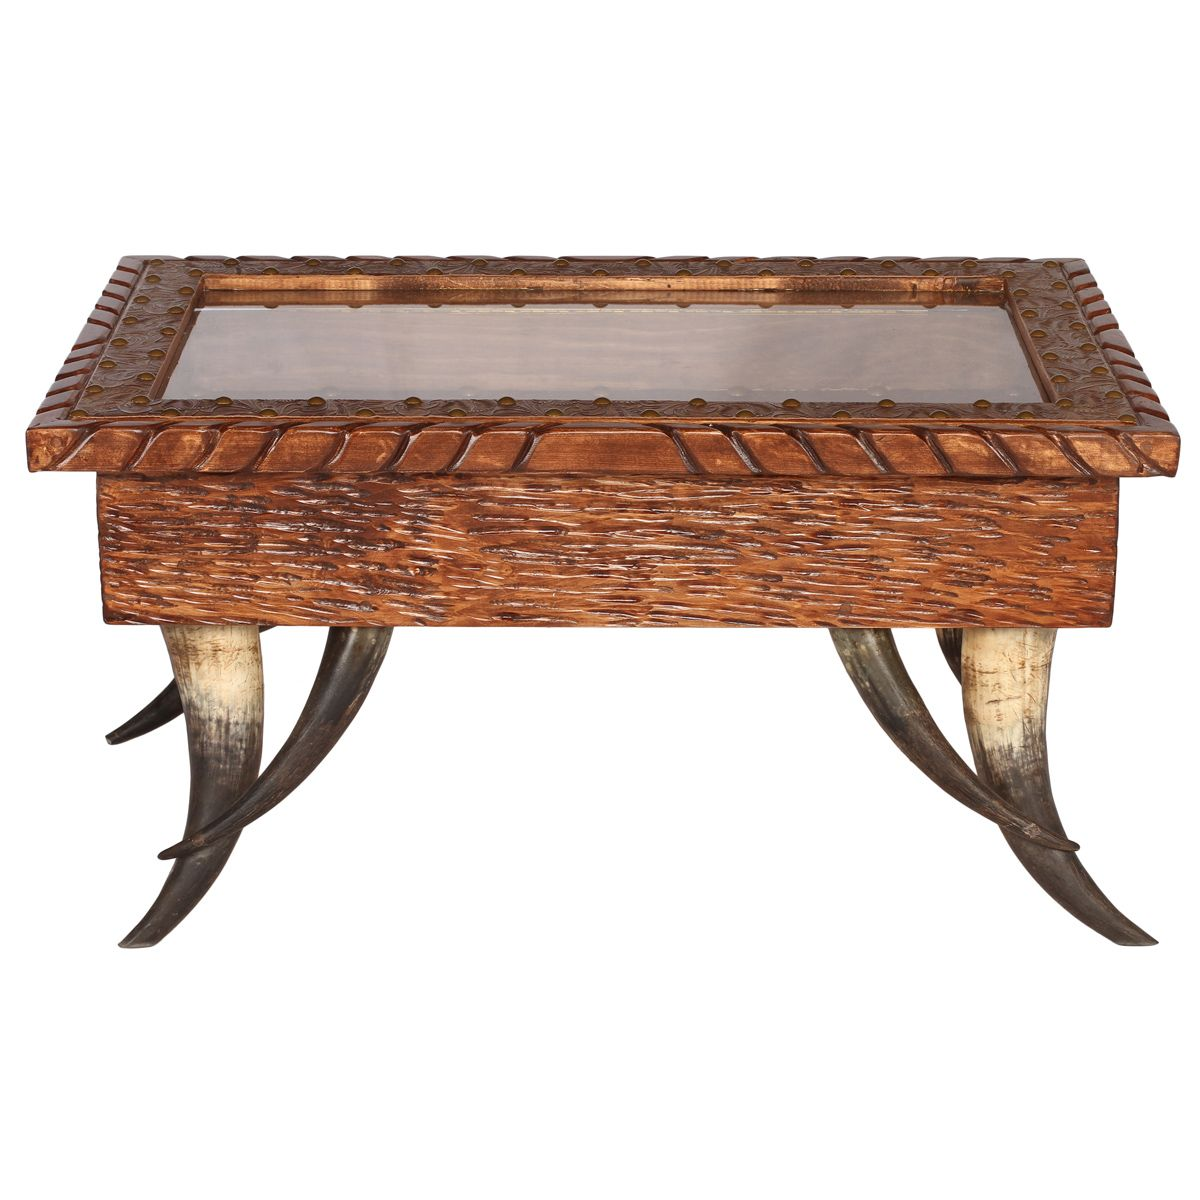 - Rustic Tables: Small Horn Collection Shadow Box Coffee Table